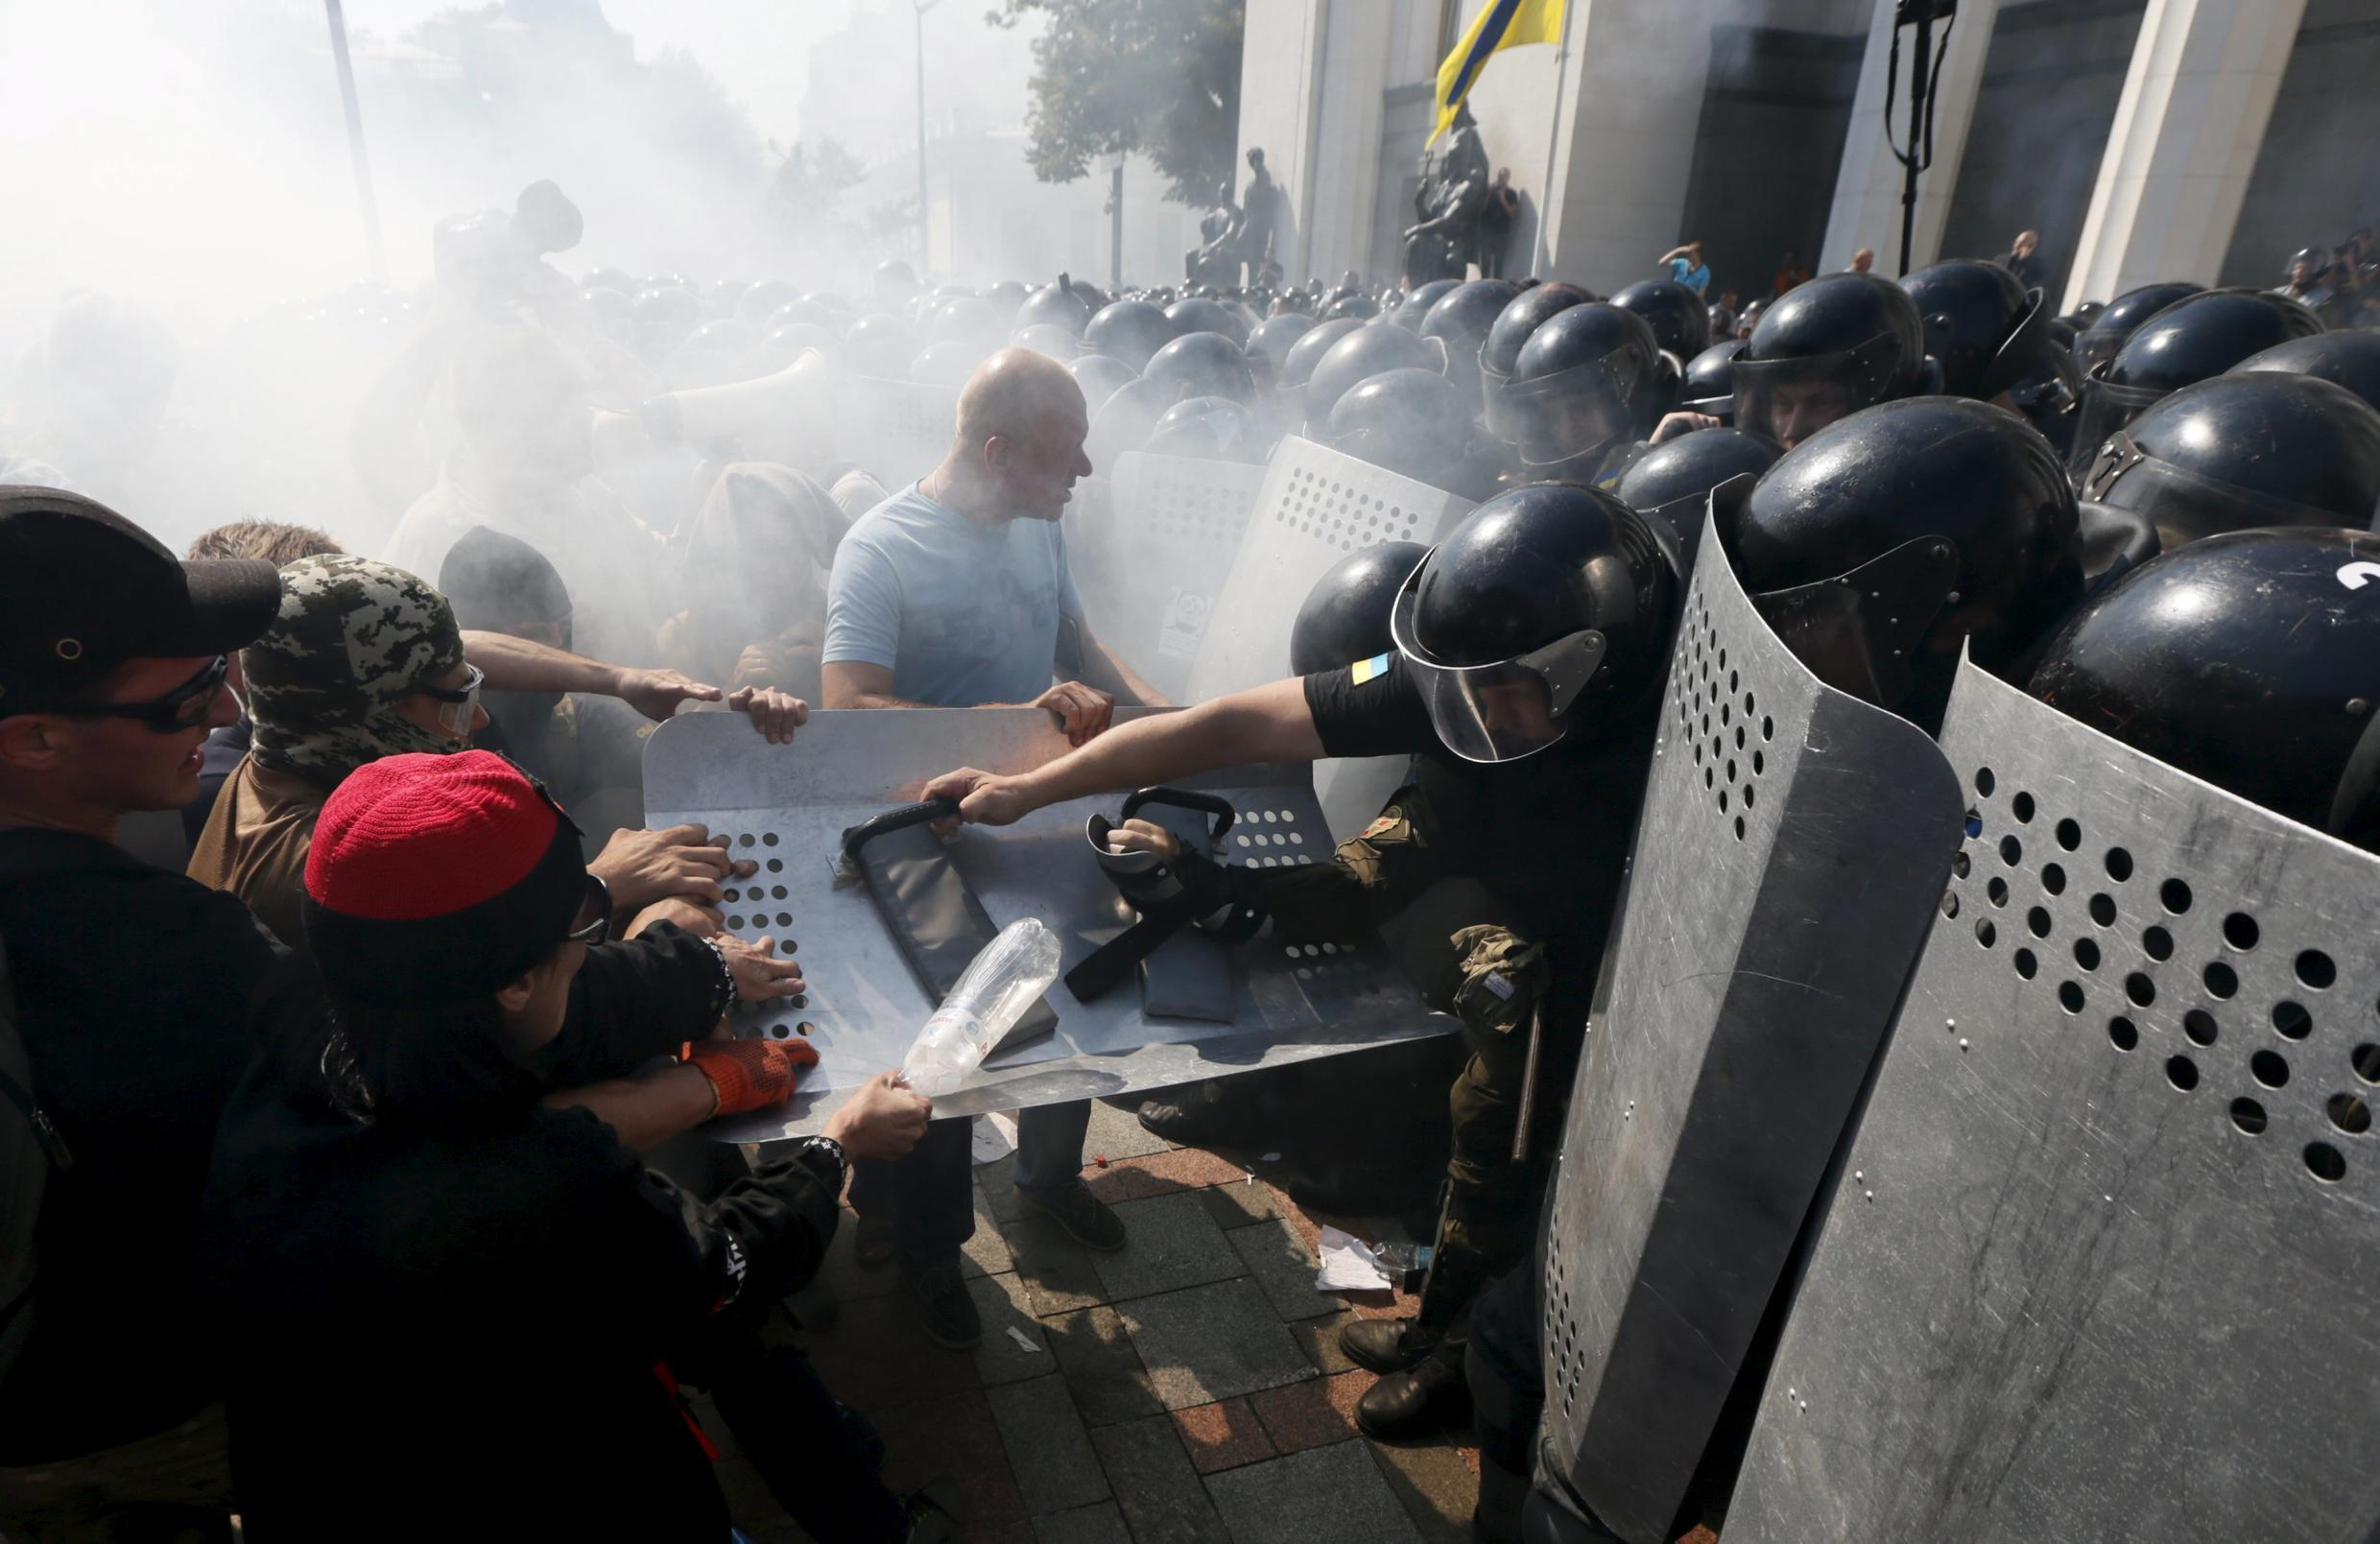 Demonstrators, who are against a constitutional amendment on decentralization, clash with police outside the parliament building in Kiev, Ukraine, August 31, 2015.